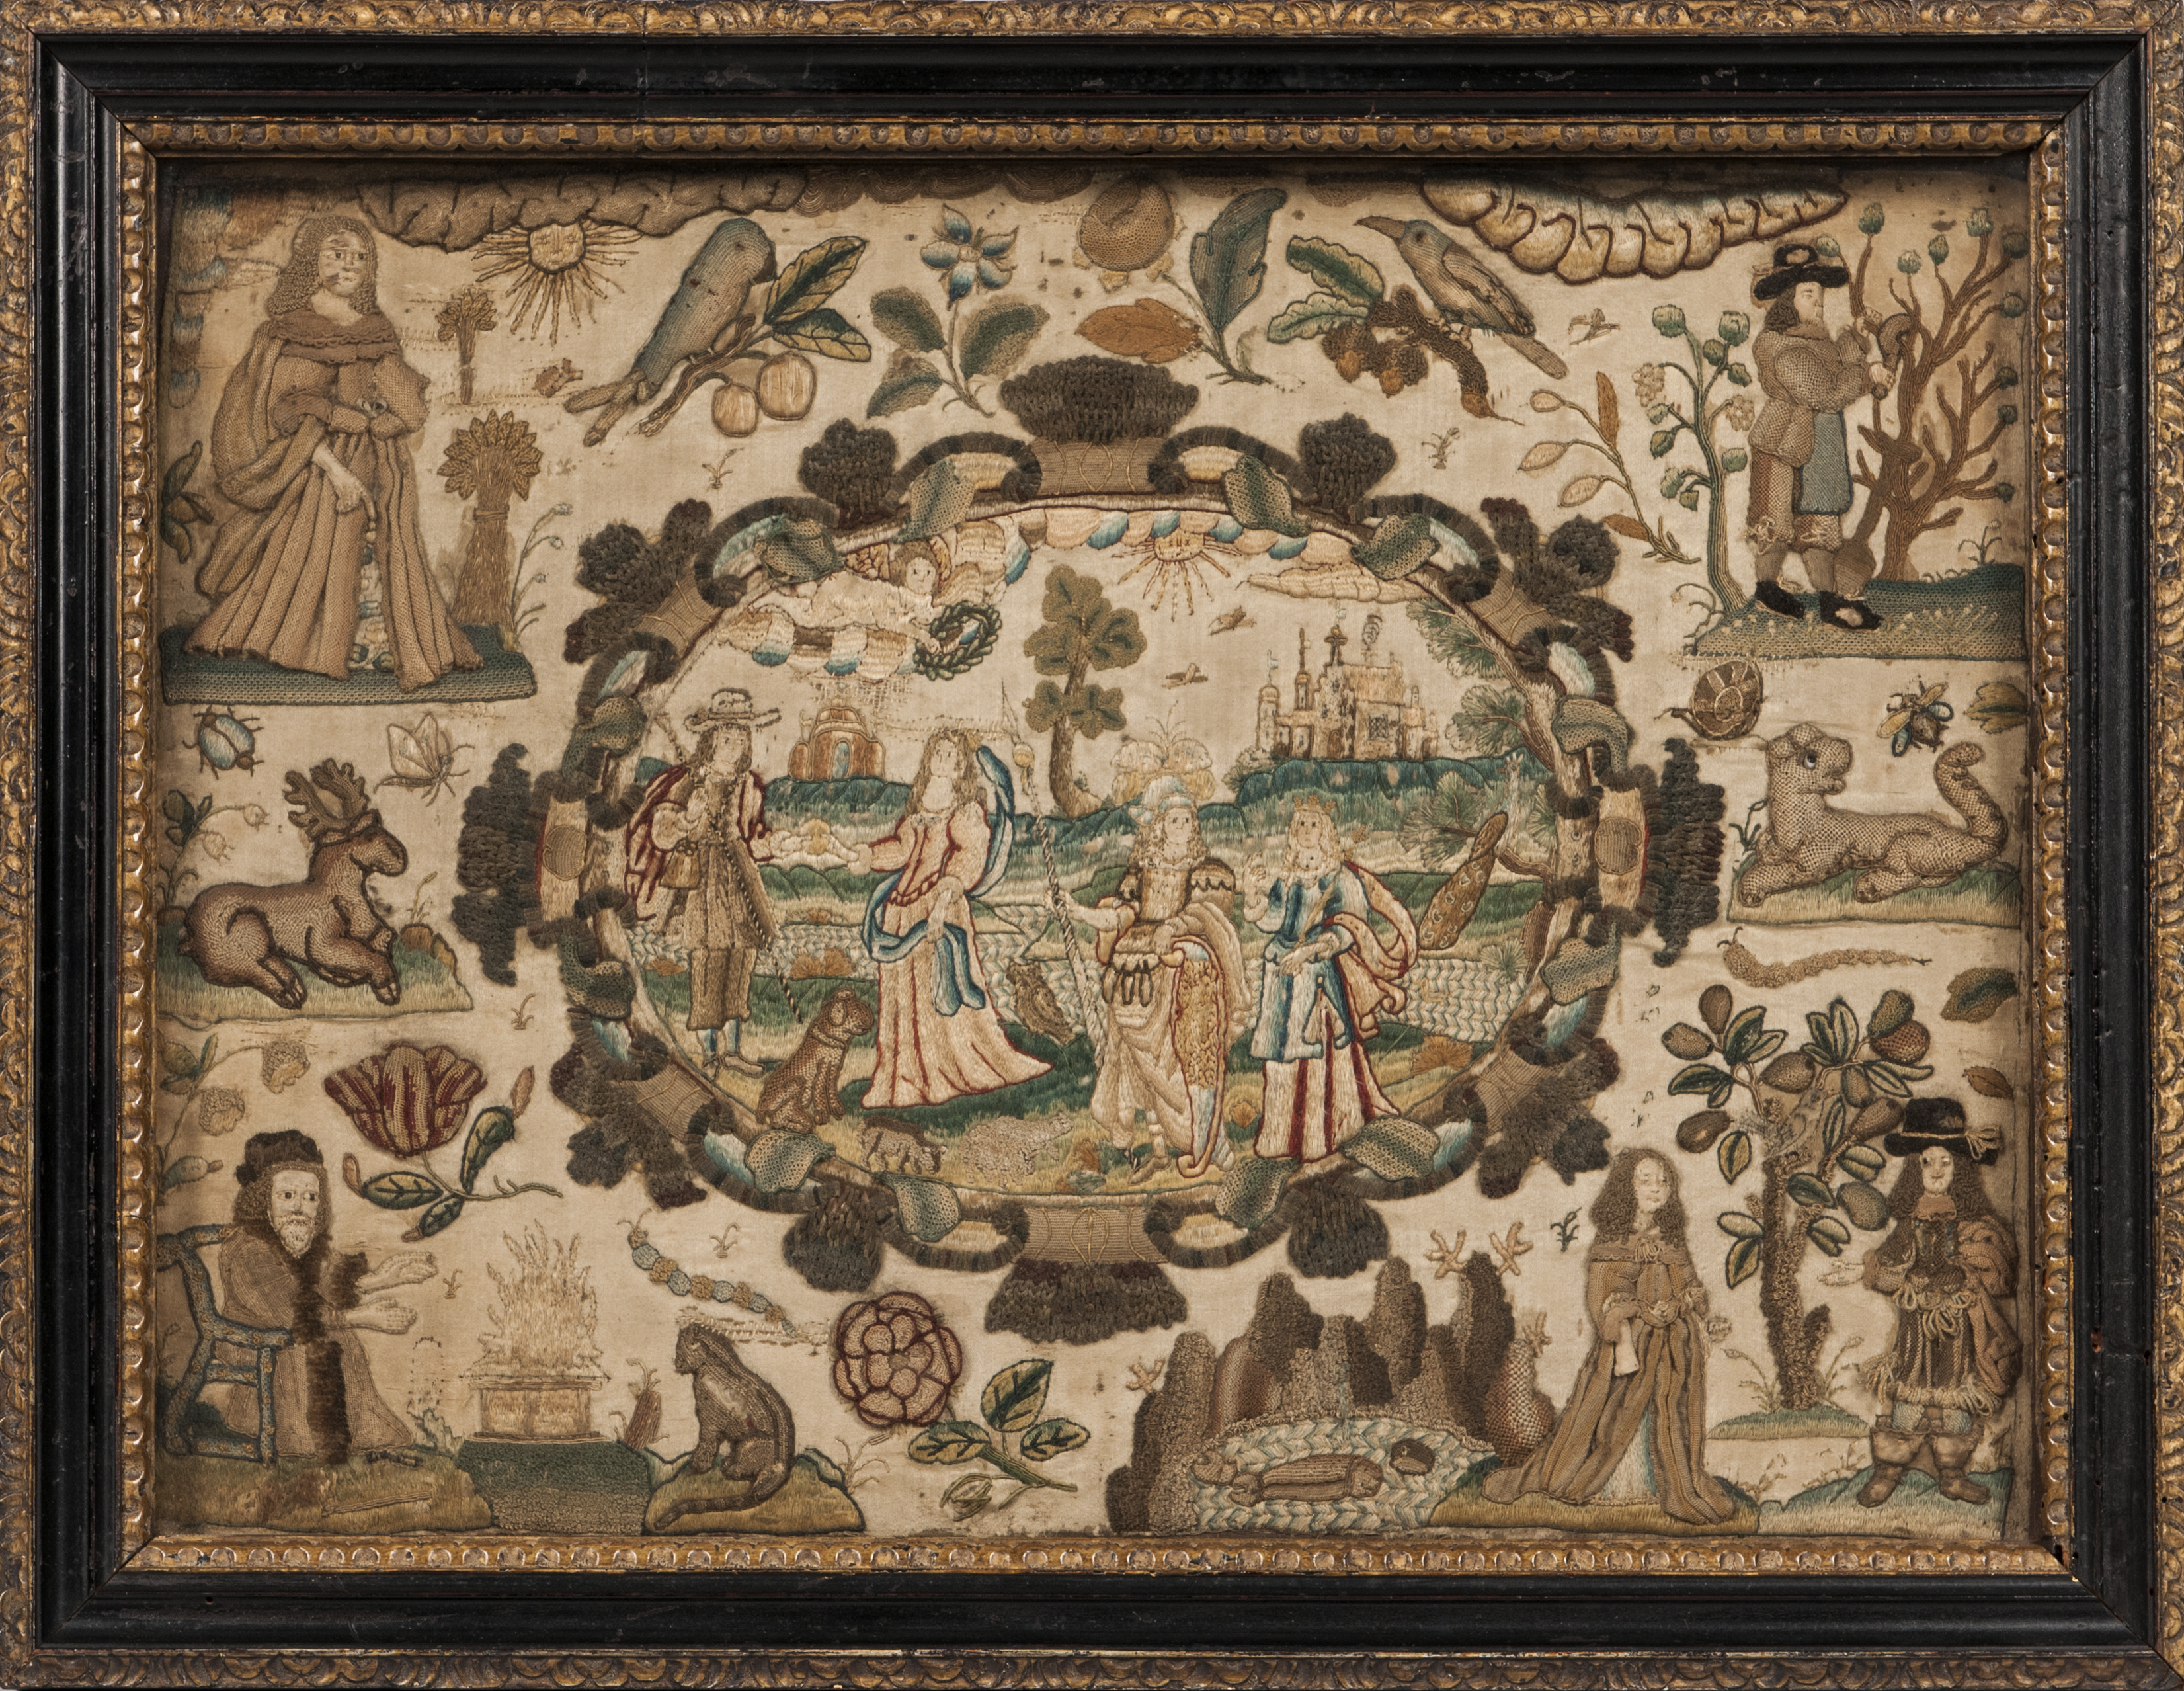 Stumpwork Picture with the Four Seasons, England, 17th century (Estimate: $2,500-3,500)